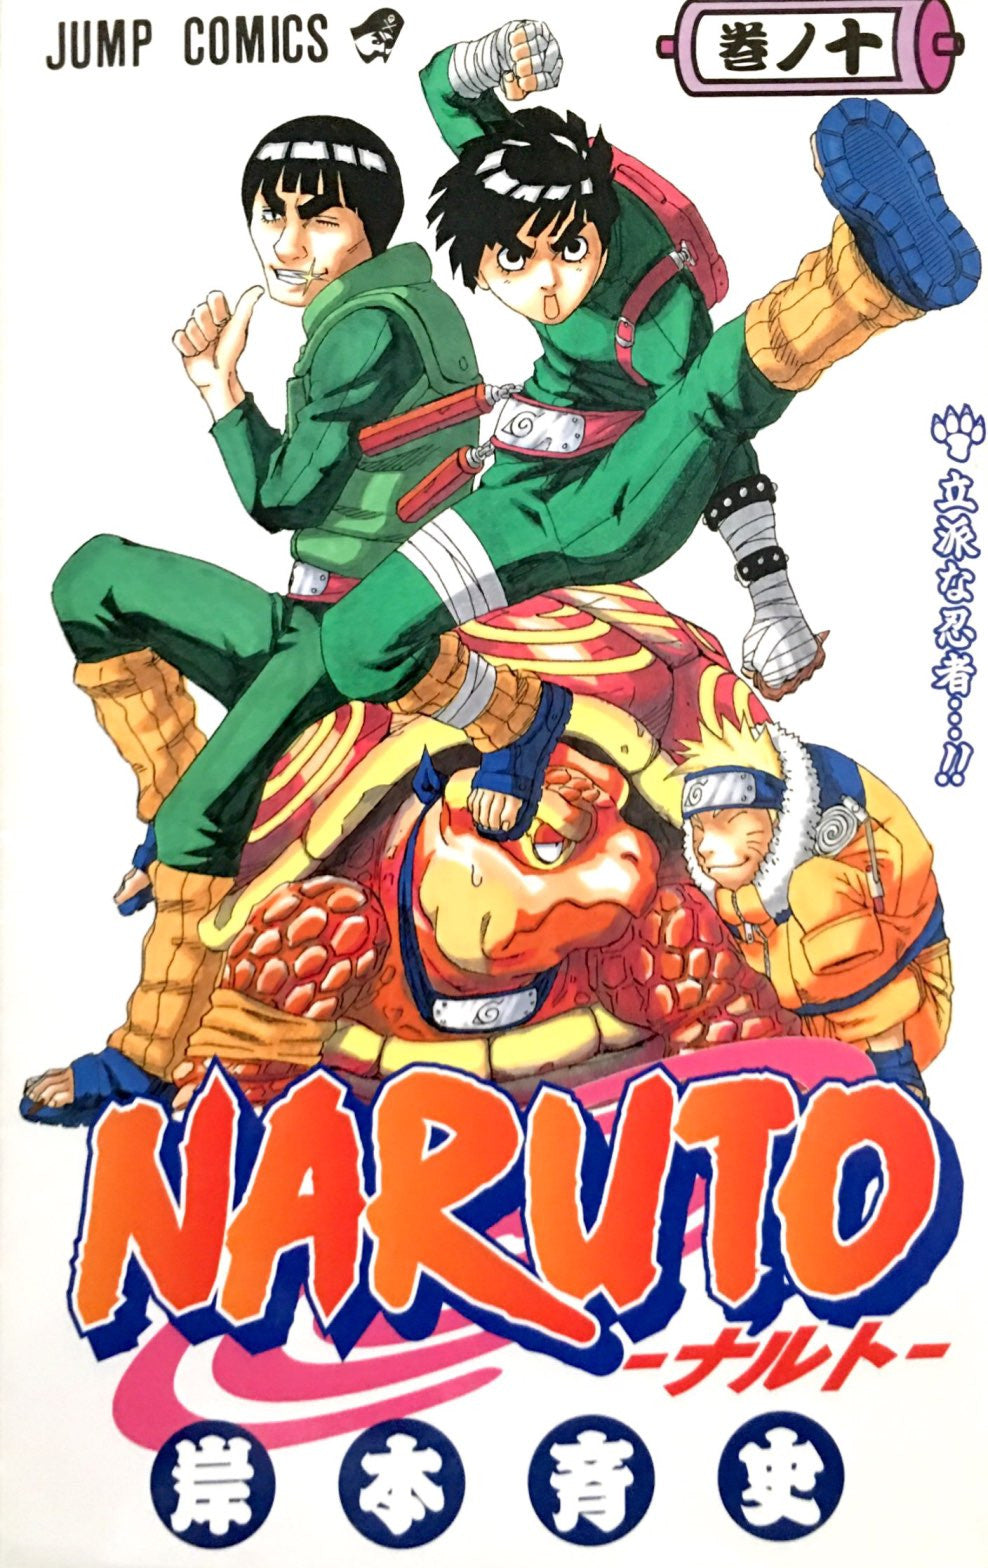 Naruto #10 - The Japan Shop